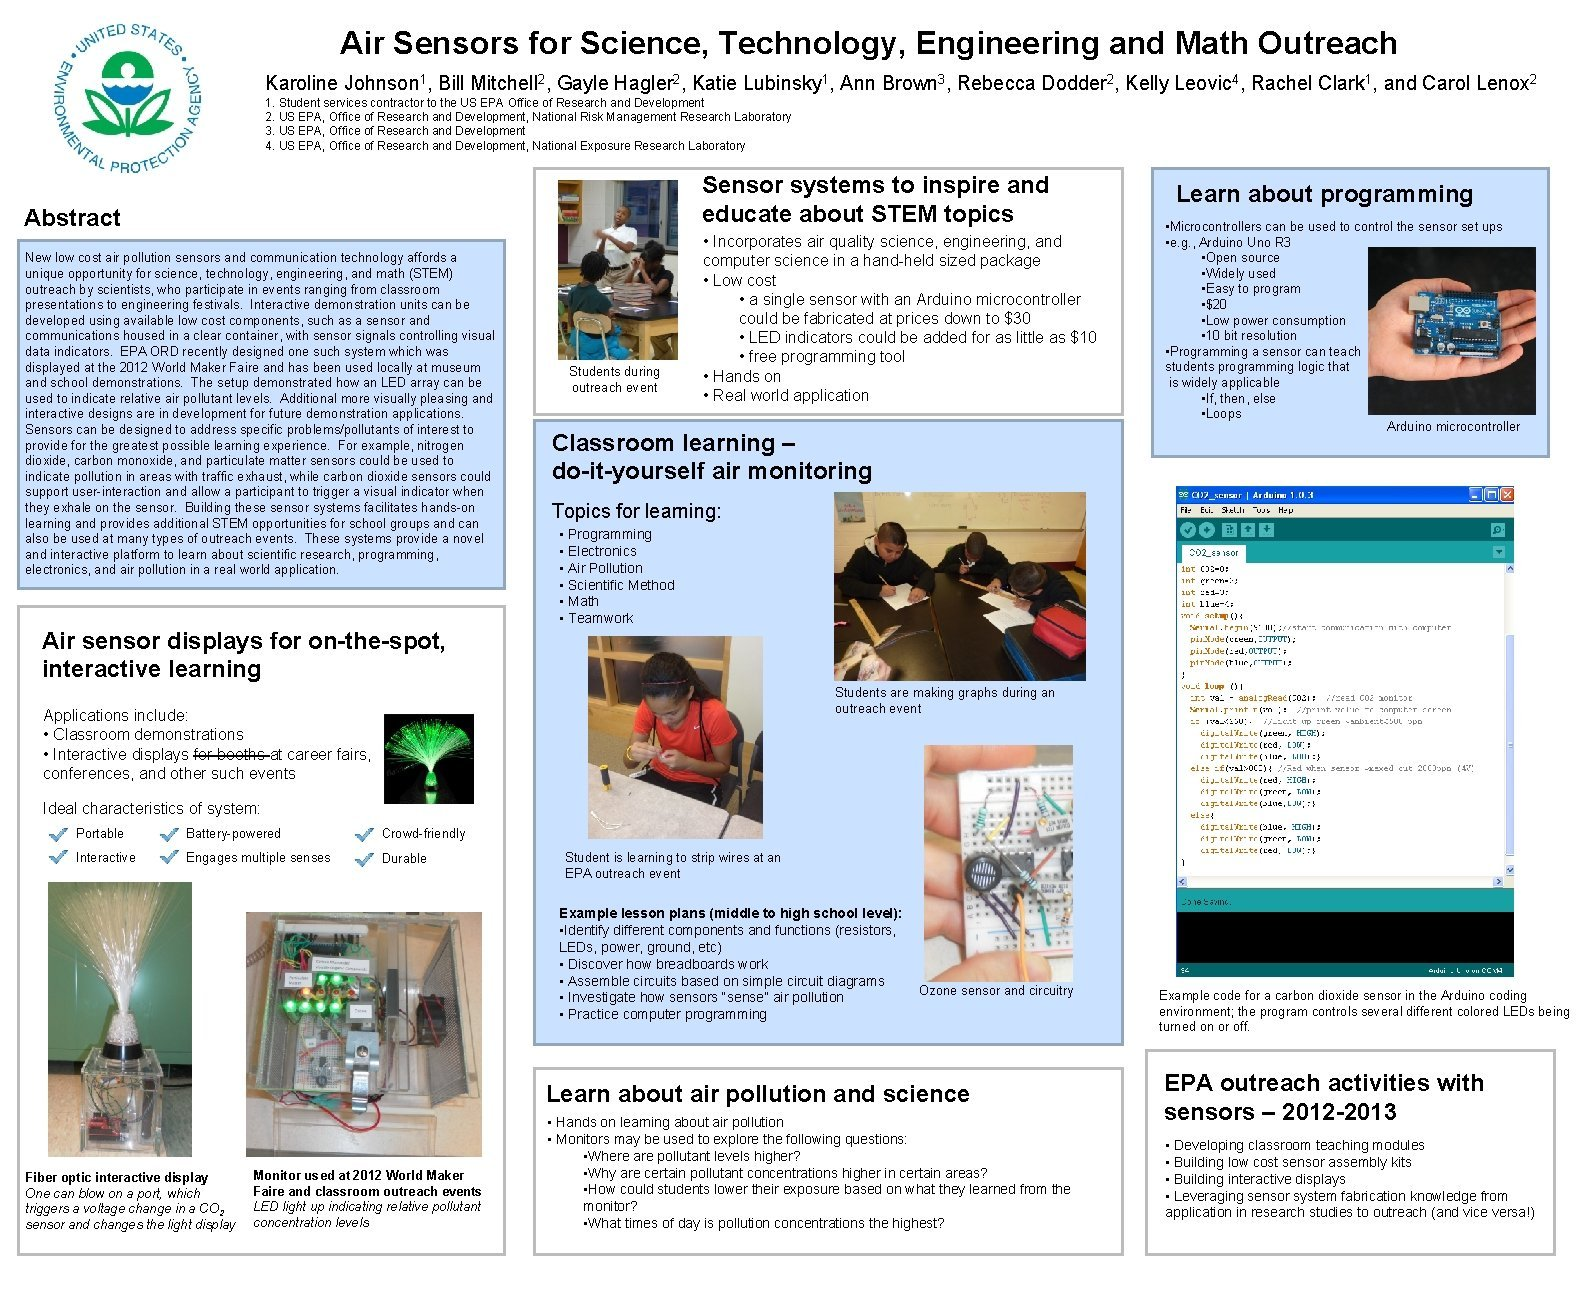 Air Sensors for Science Technology Engineering and Math